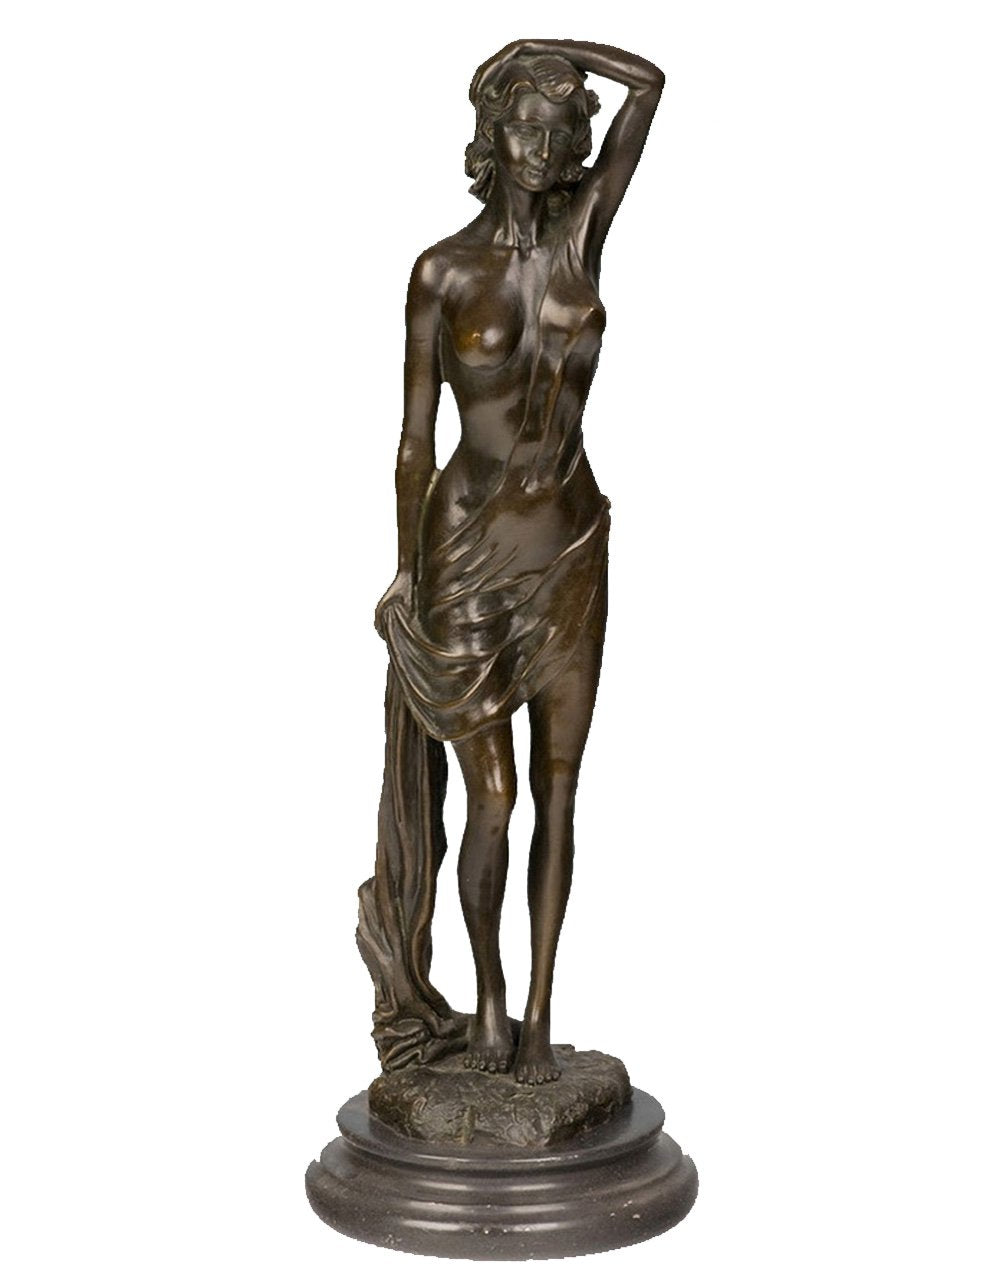 TPY-653 bronze sculpture